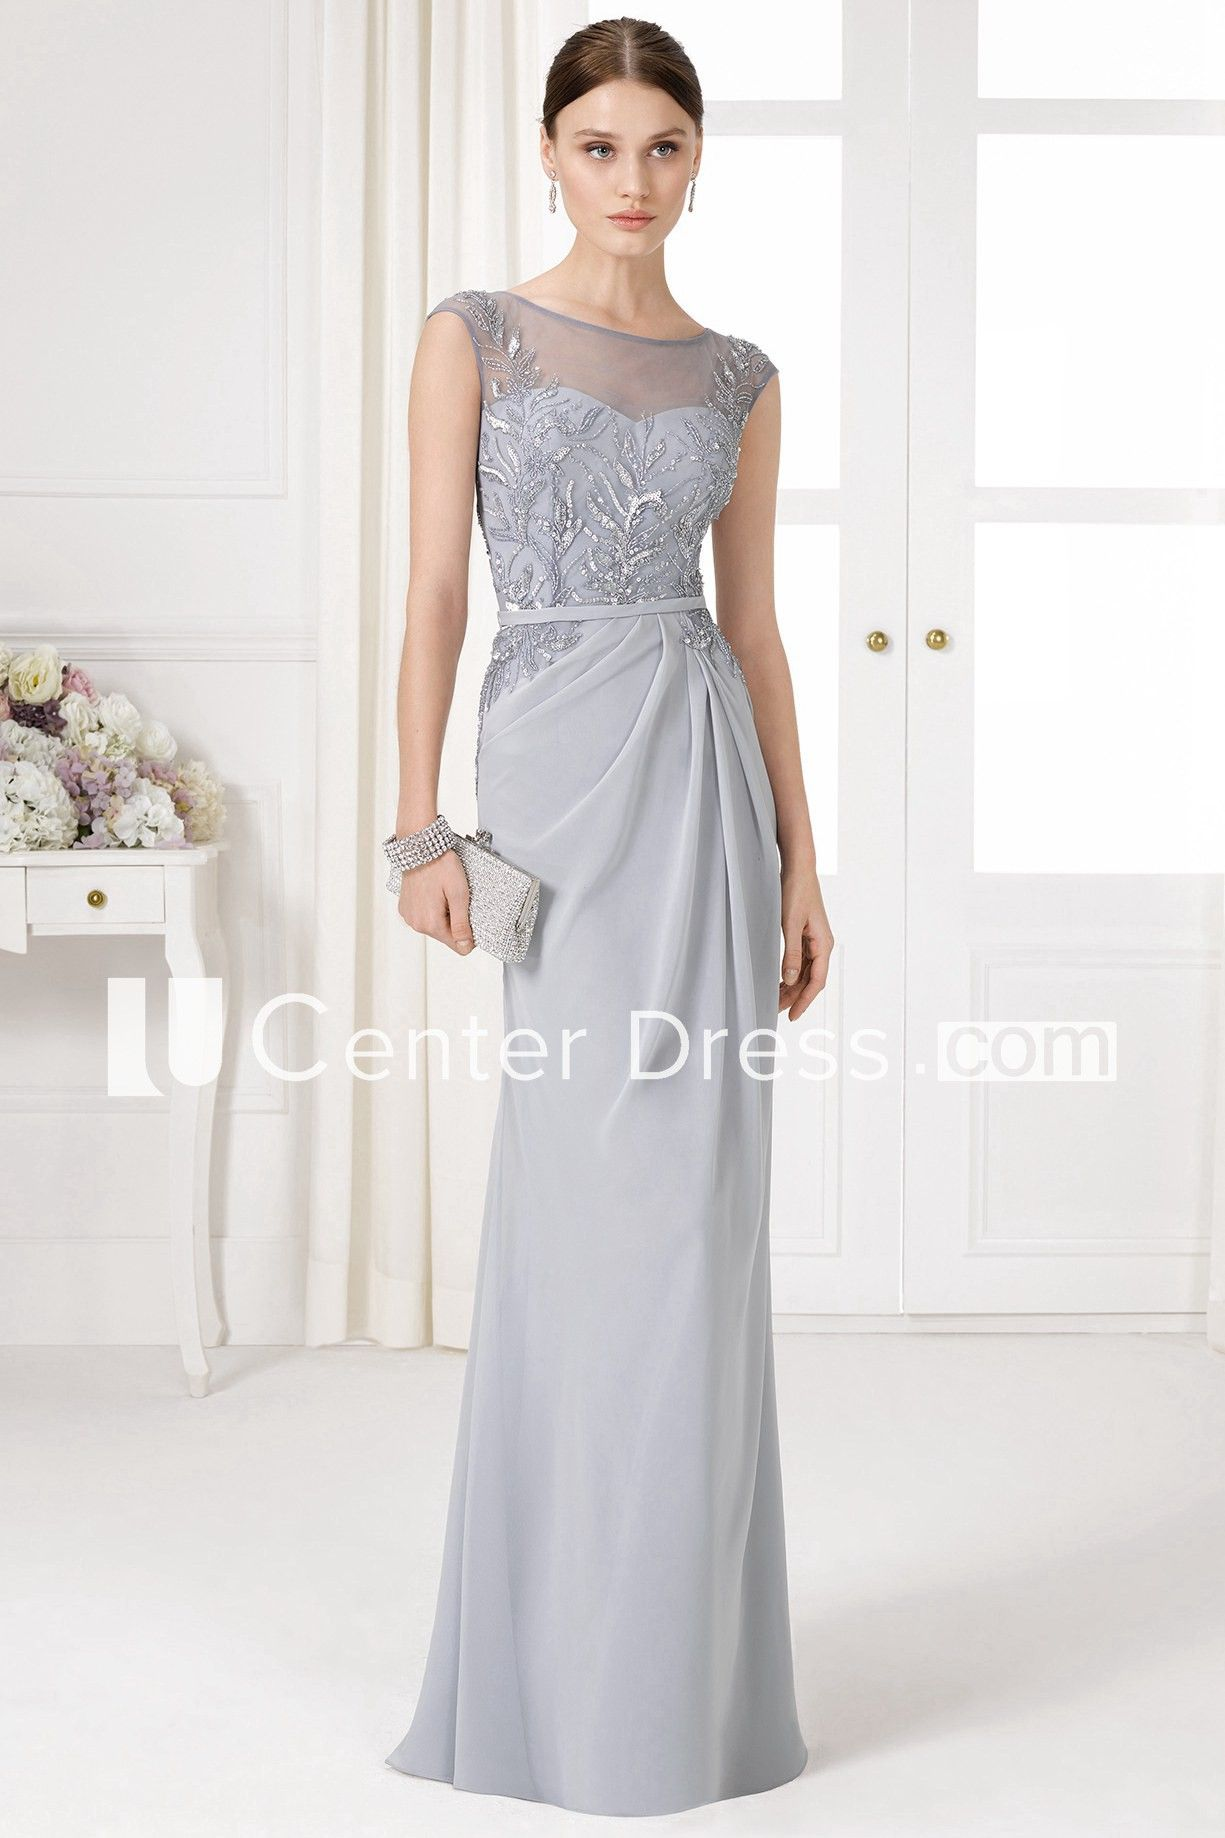 073ccdfef238 Floor-Length Sheath Bateau Neck Sequined Cap Sleeve Chiffon Prom Dress - UCenter  Dress